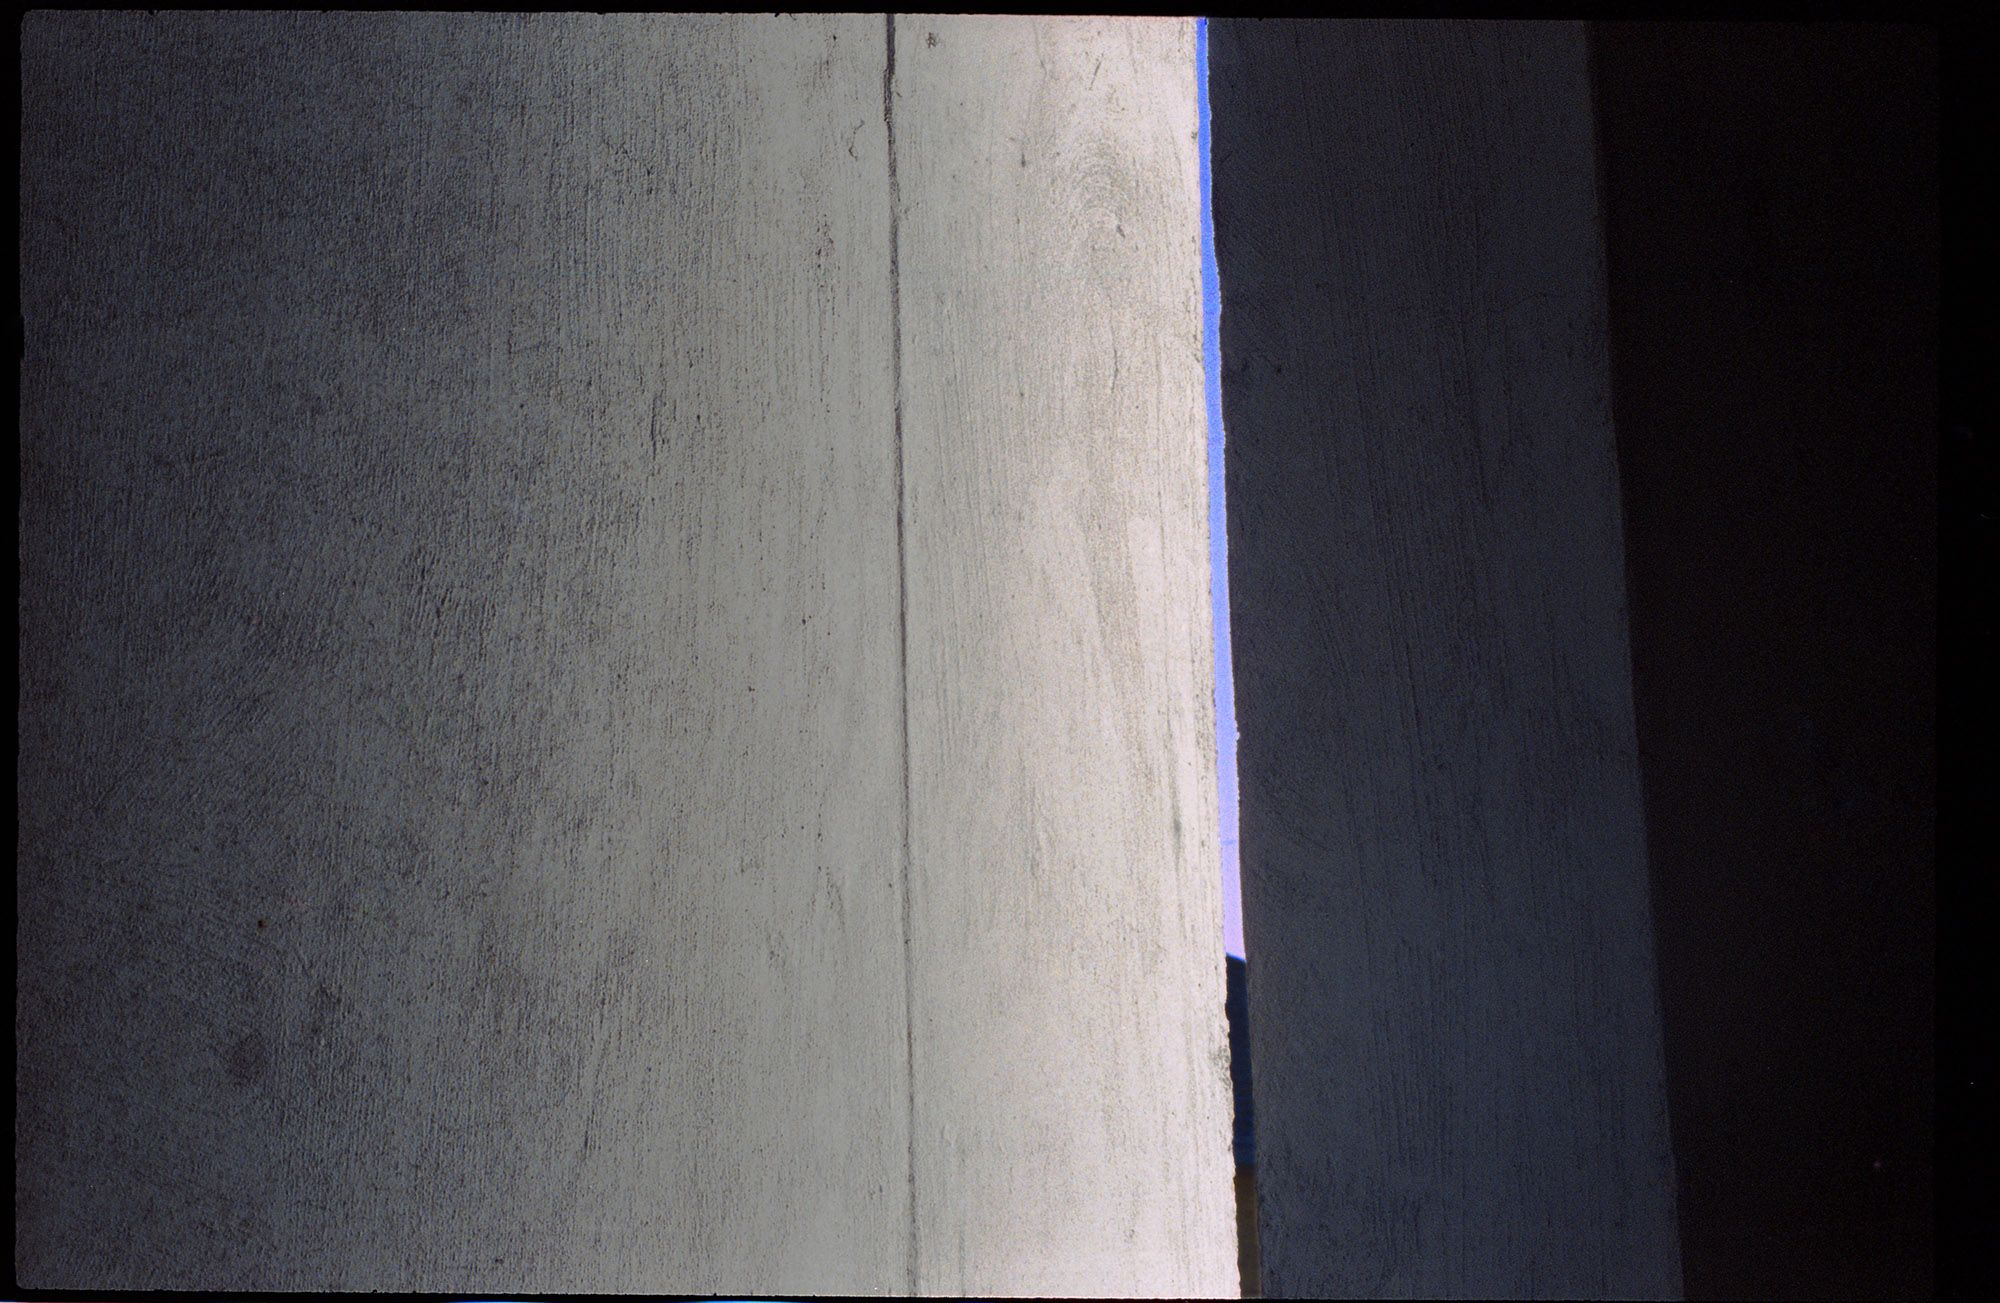 'Sky through concrete' #analoguephotography #filmphotography #kodakporta #zenithcameras #analogueimageltd